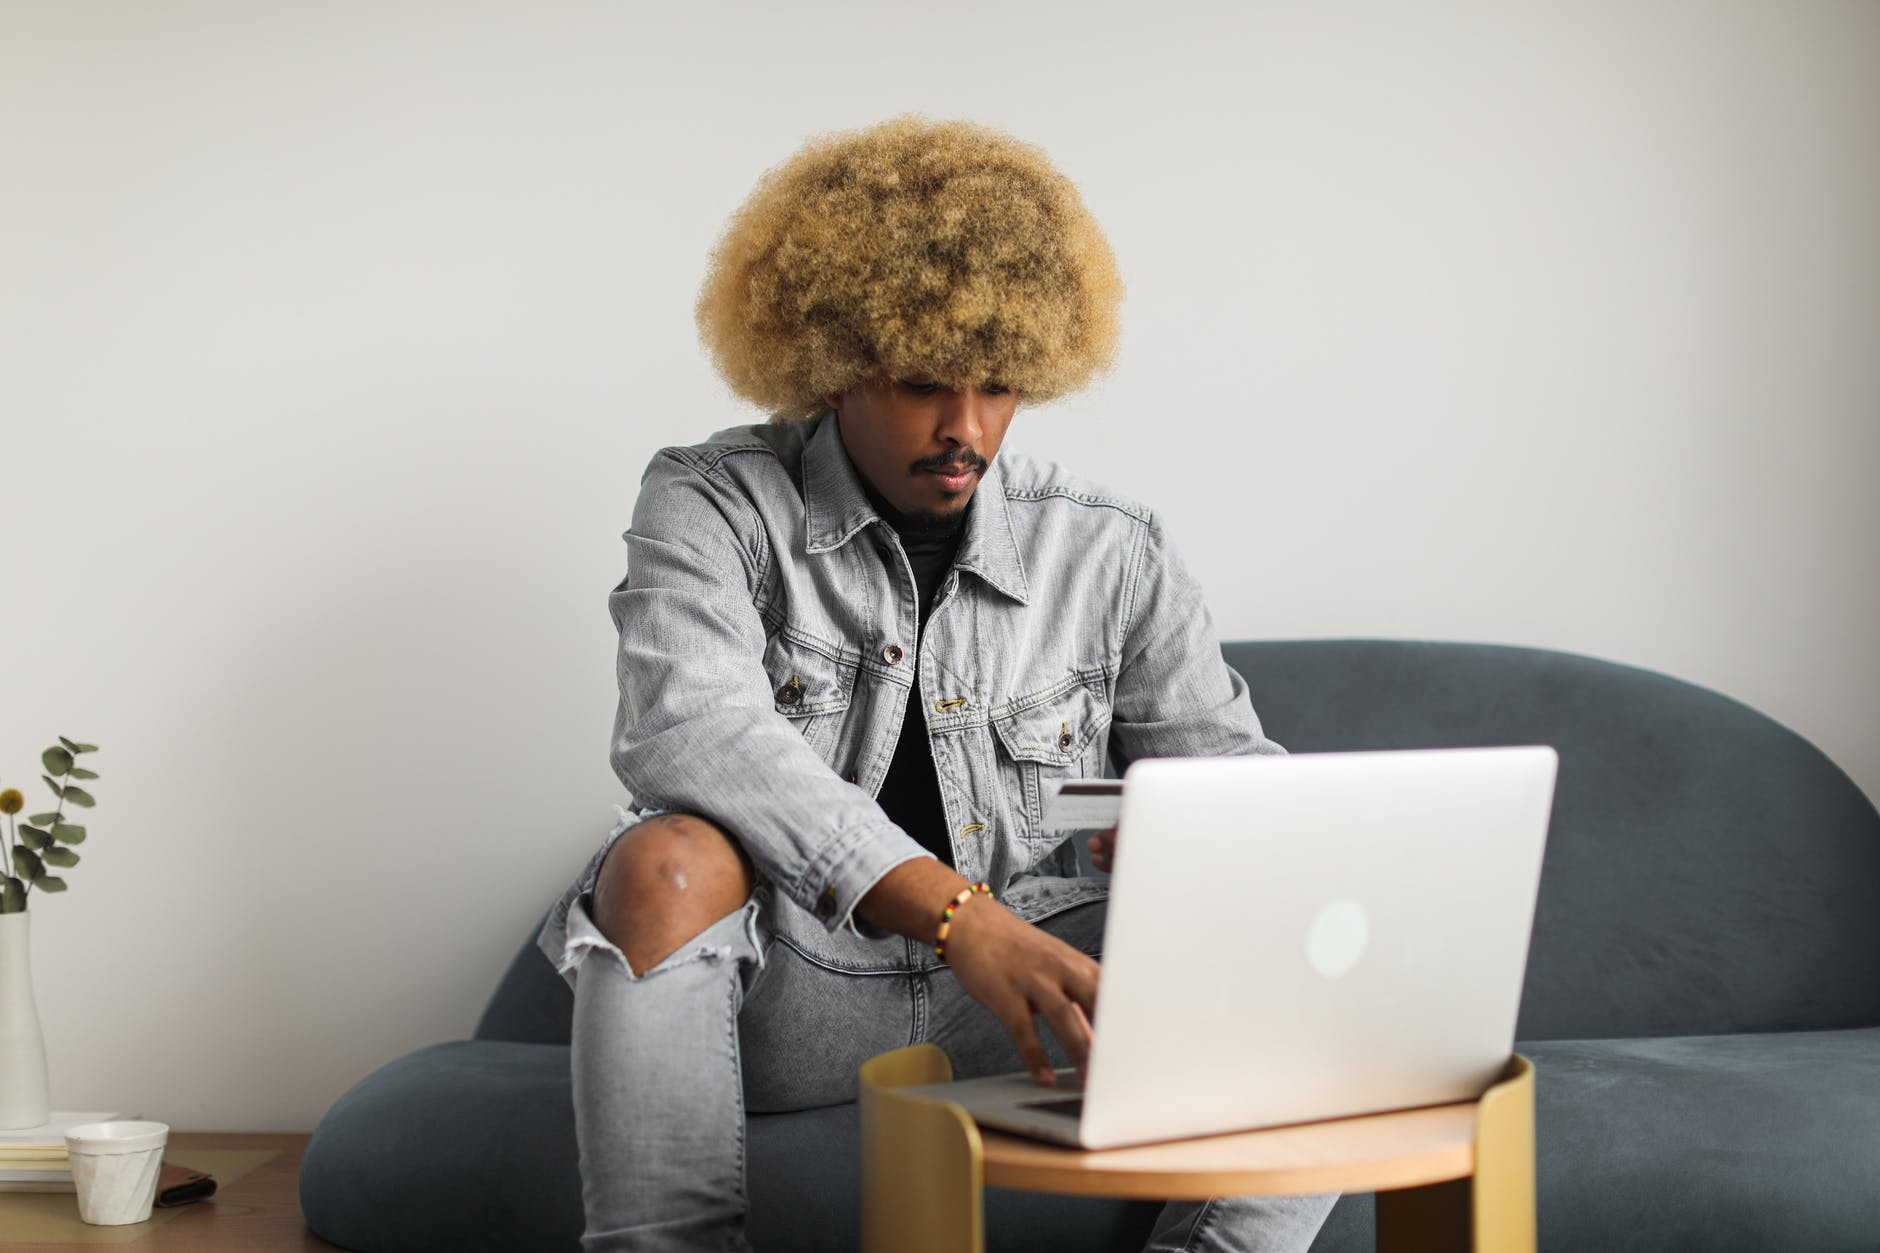 man using laptop and bank card for online payment